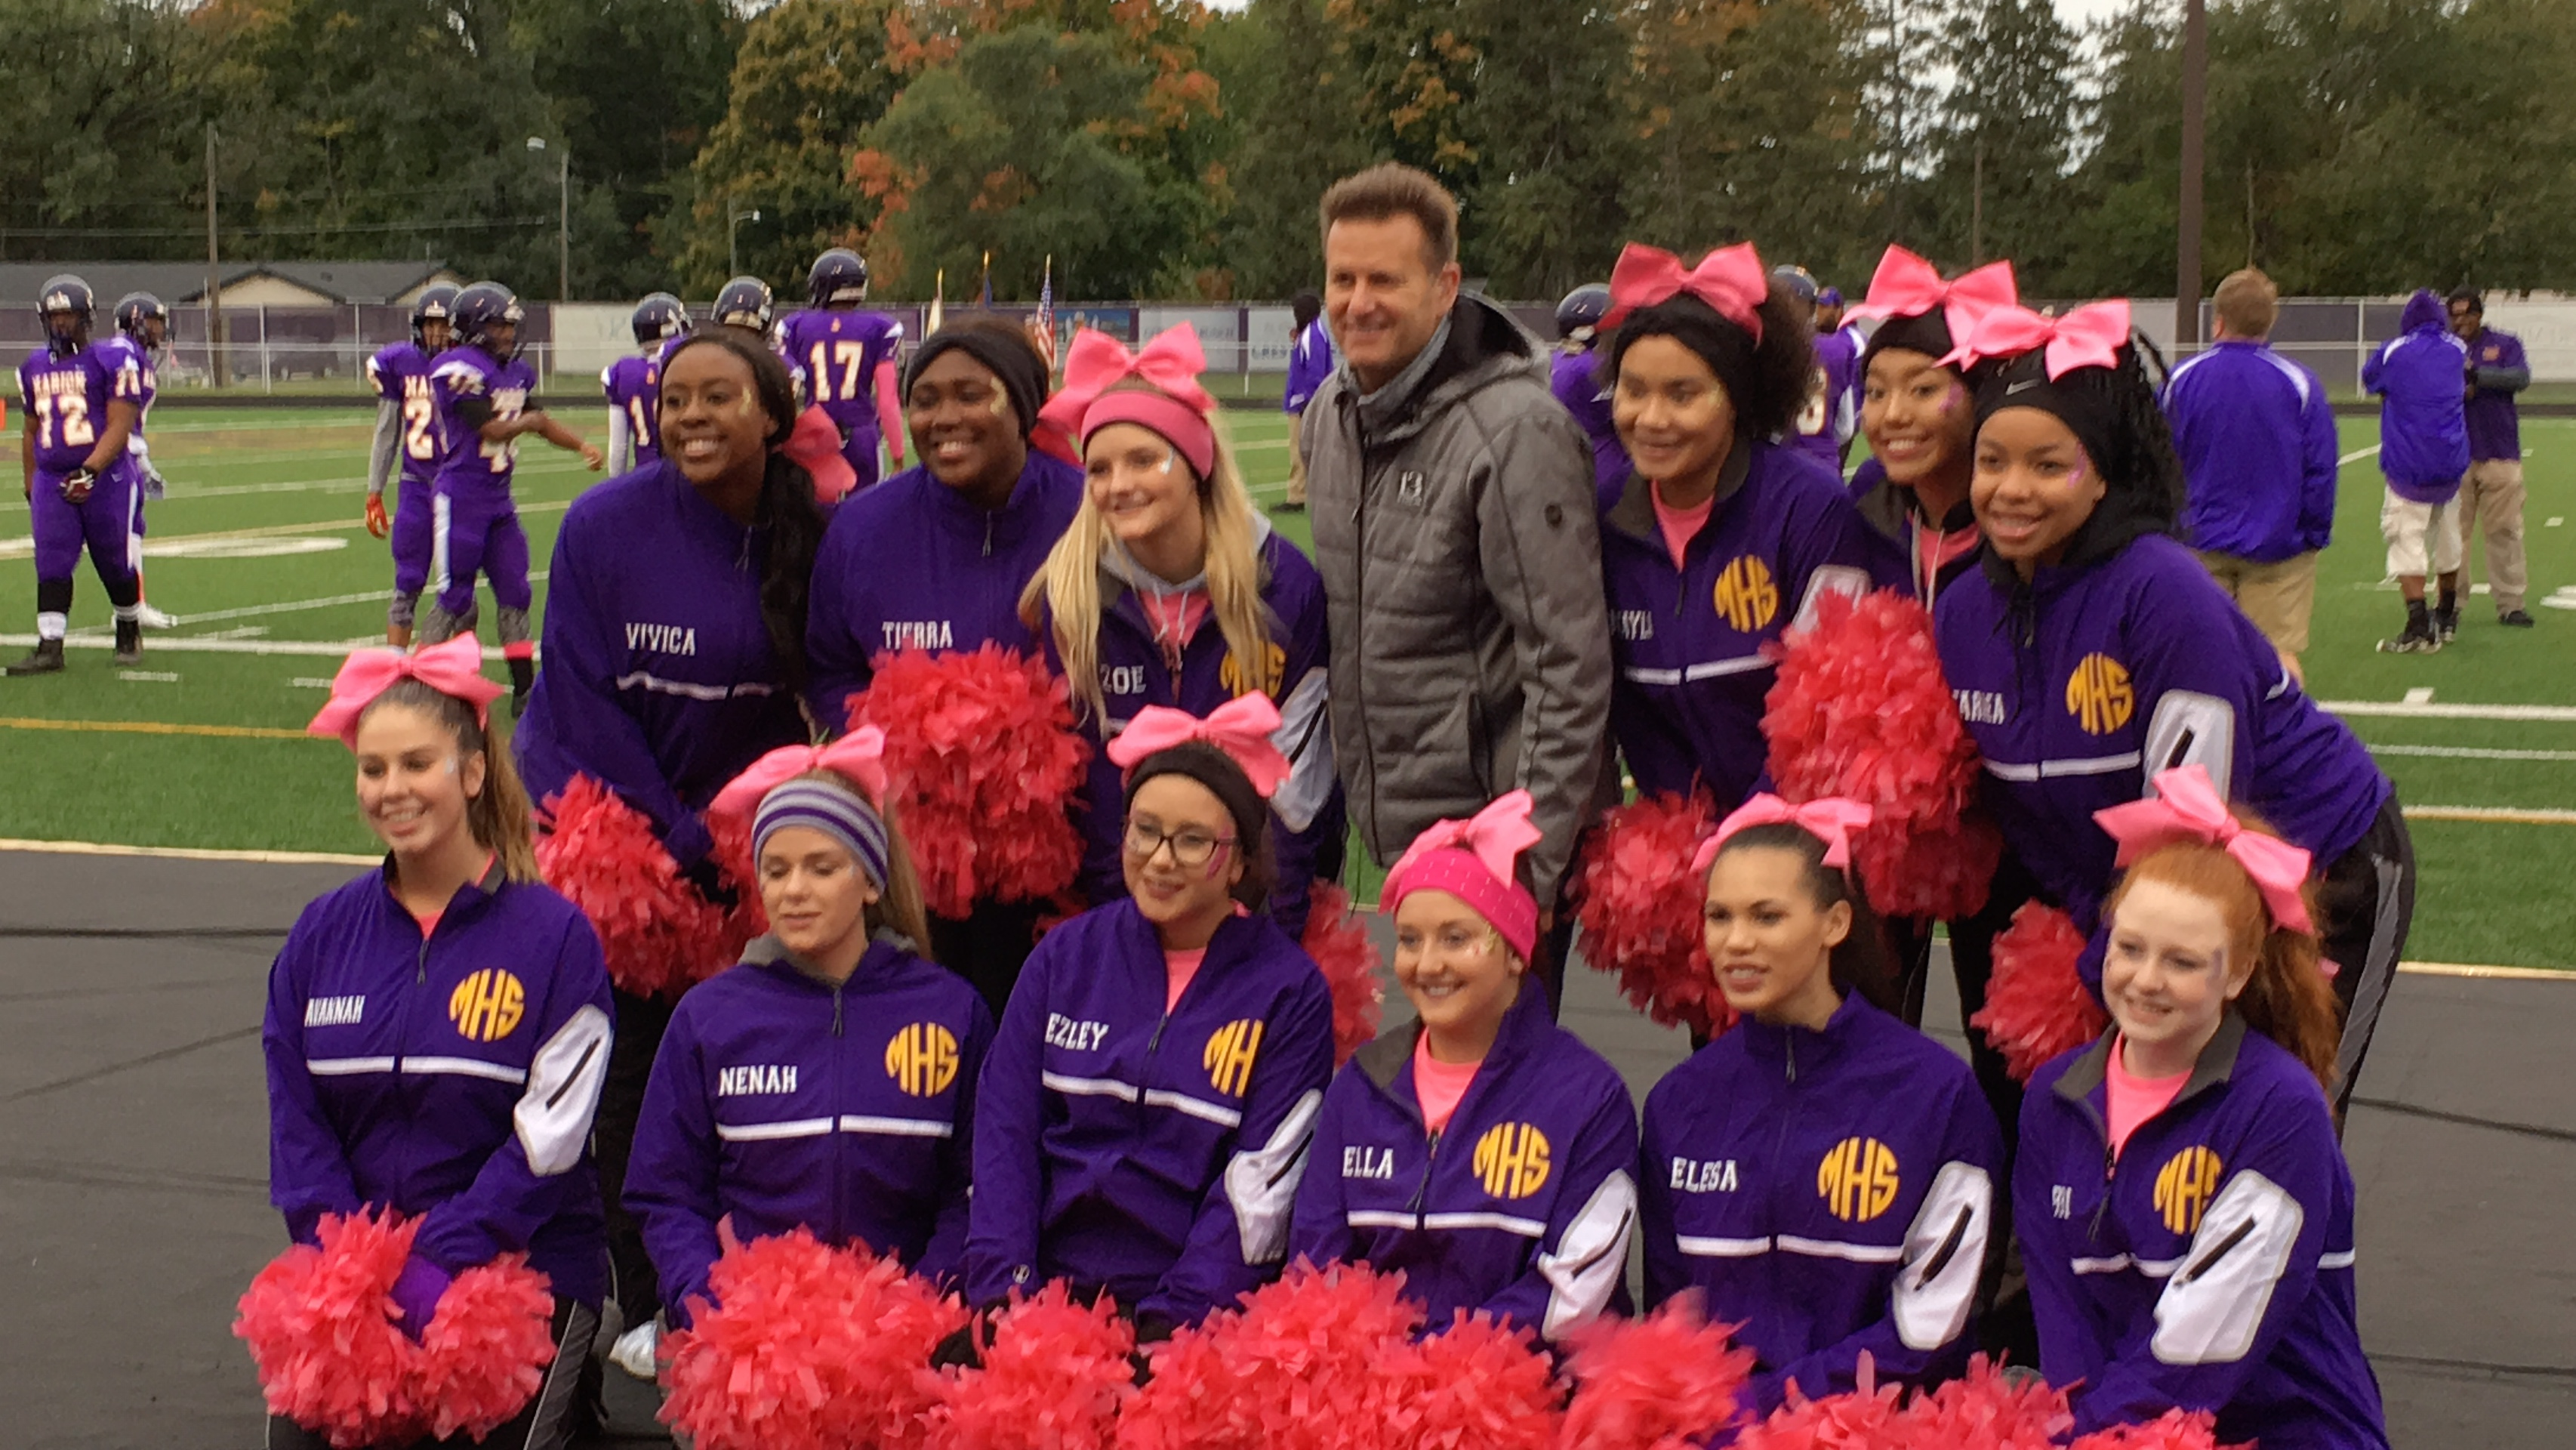 Dave Calabro and WTHR's Operation Football make a return visit to MHS